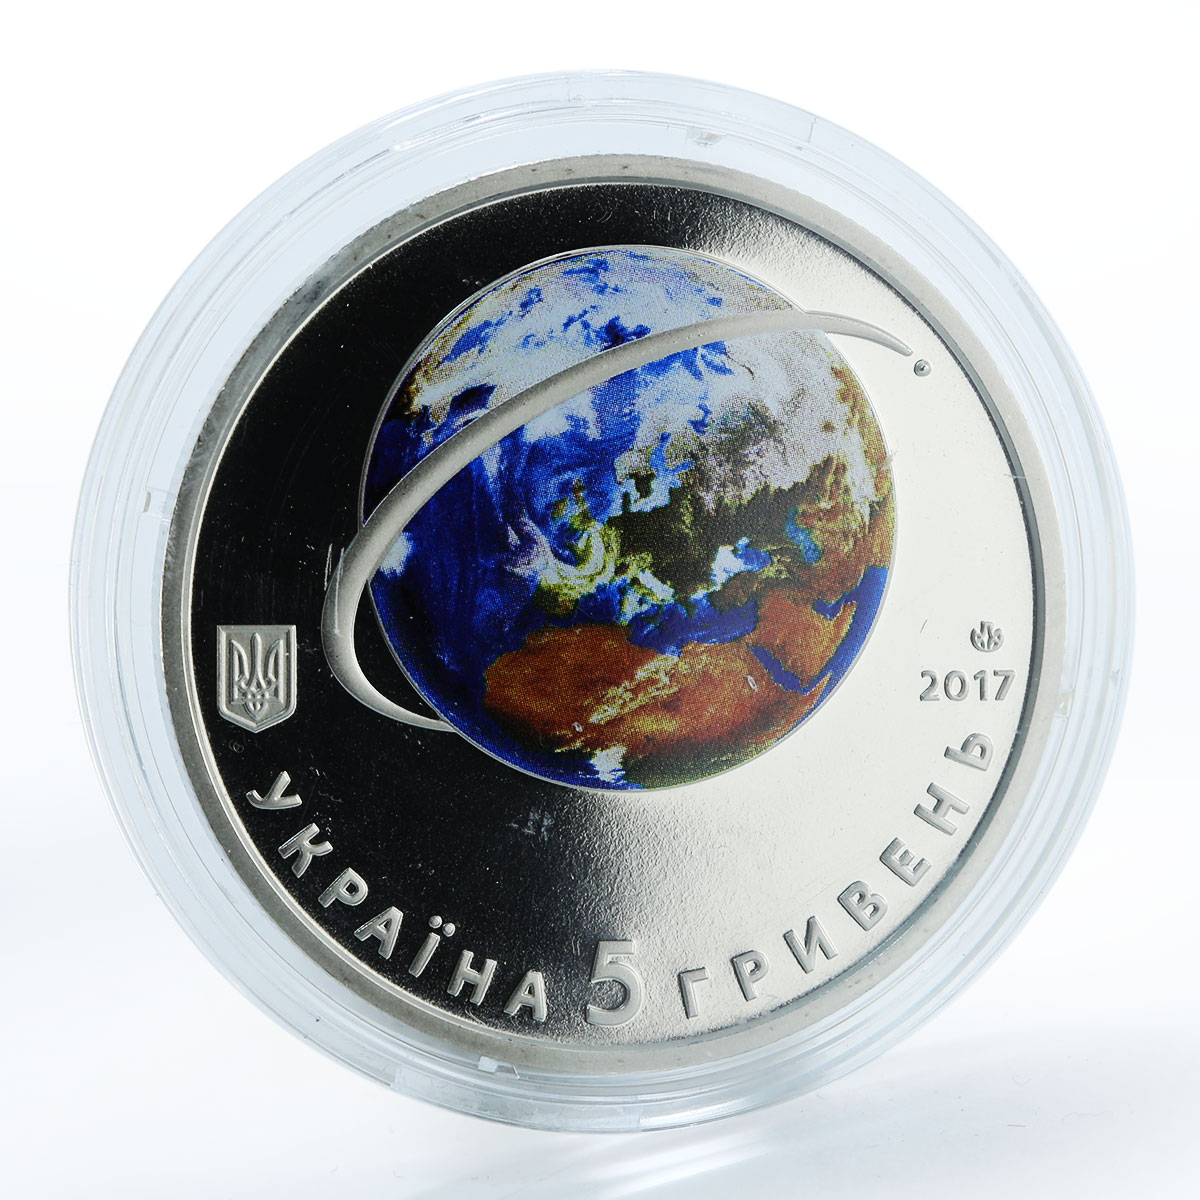 Ukraine 5 hryvnia 60th anniversary first Earth satellite color nickel coin 2017